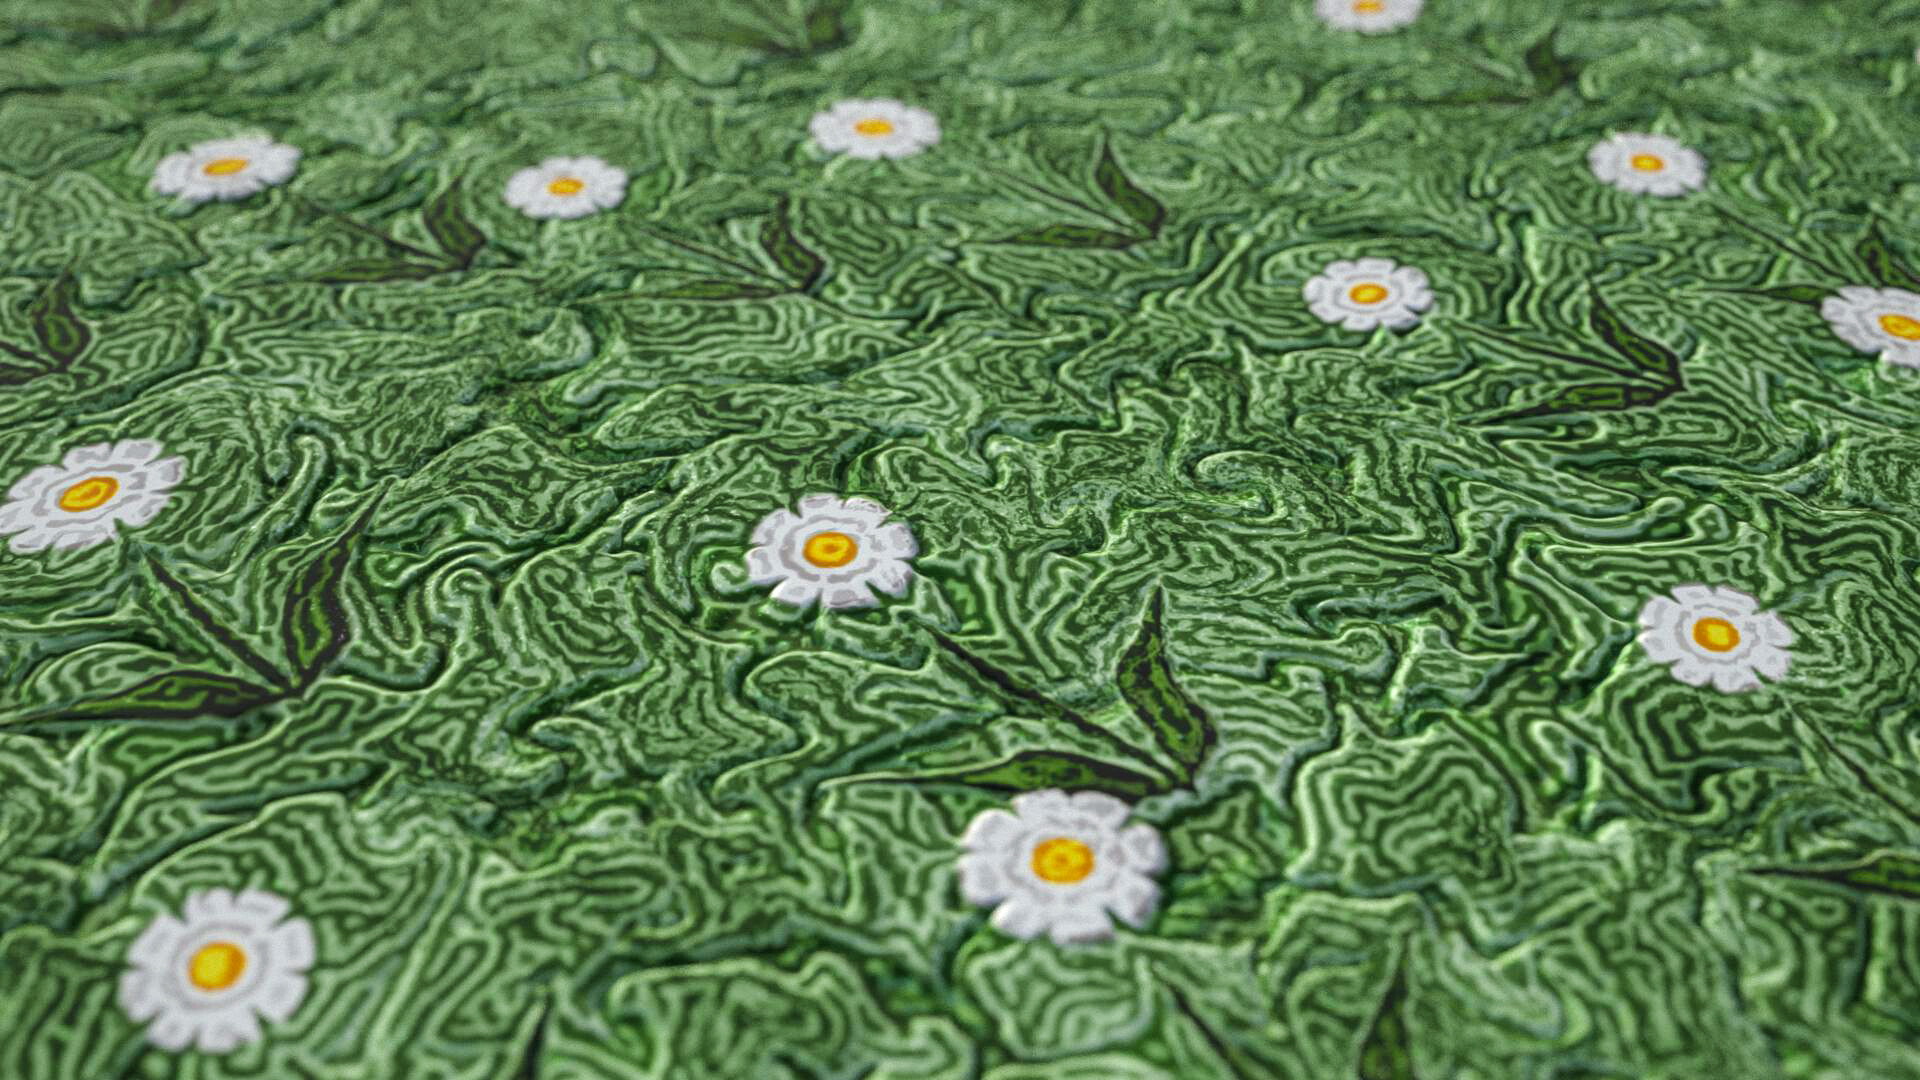 procedurally generated traditional marbling figures ( heart, tiger's eye, devil's eye, tulip, poppy, daisy, flowers 4-8 pedals, bird, oratots, butterflies )